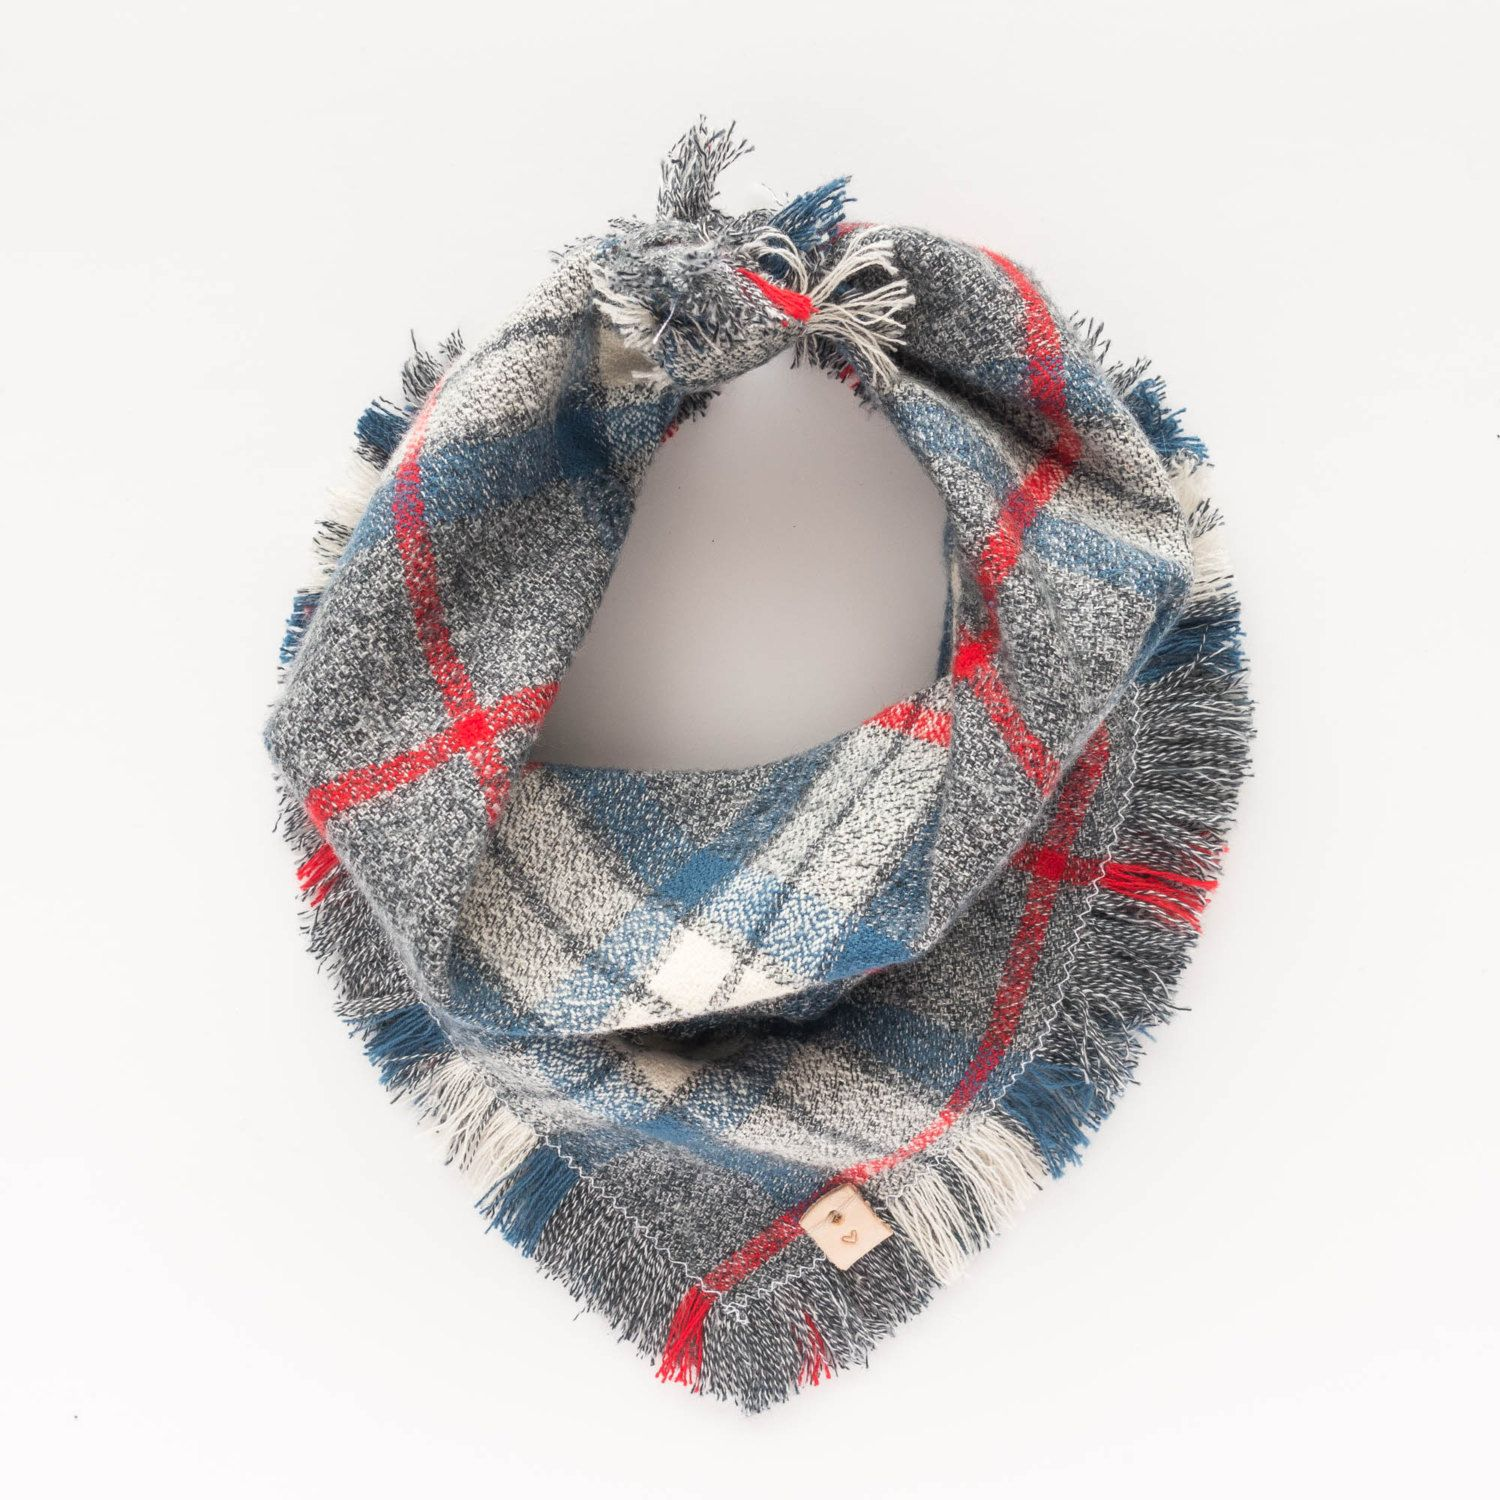 ATLAS. Dog bandana or baby scarf in ivory, red, blue, grey, with fringe trim. Sizes: XS - XL. $32. Click to buy now.